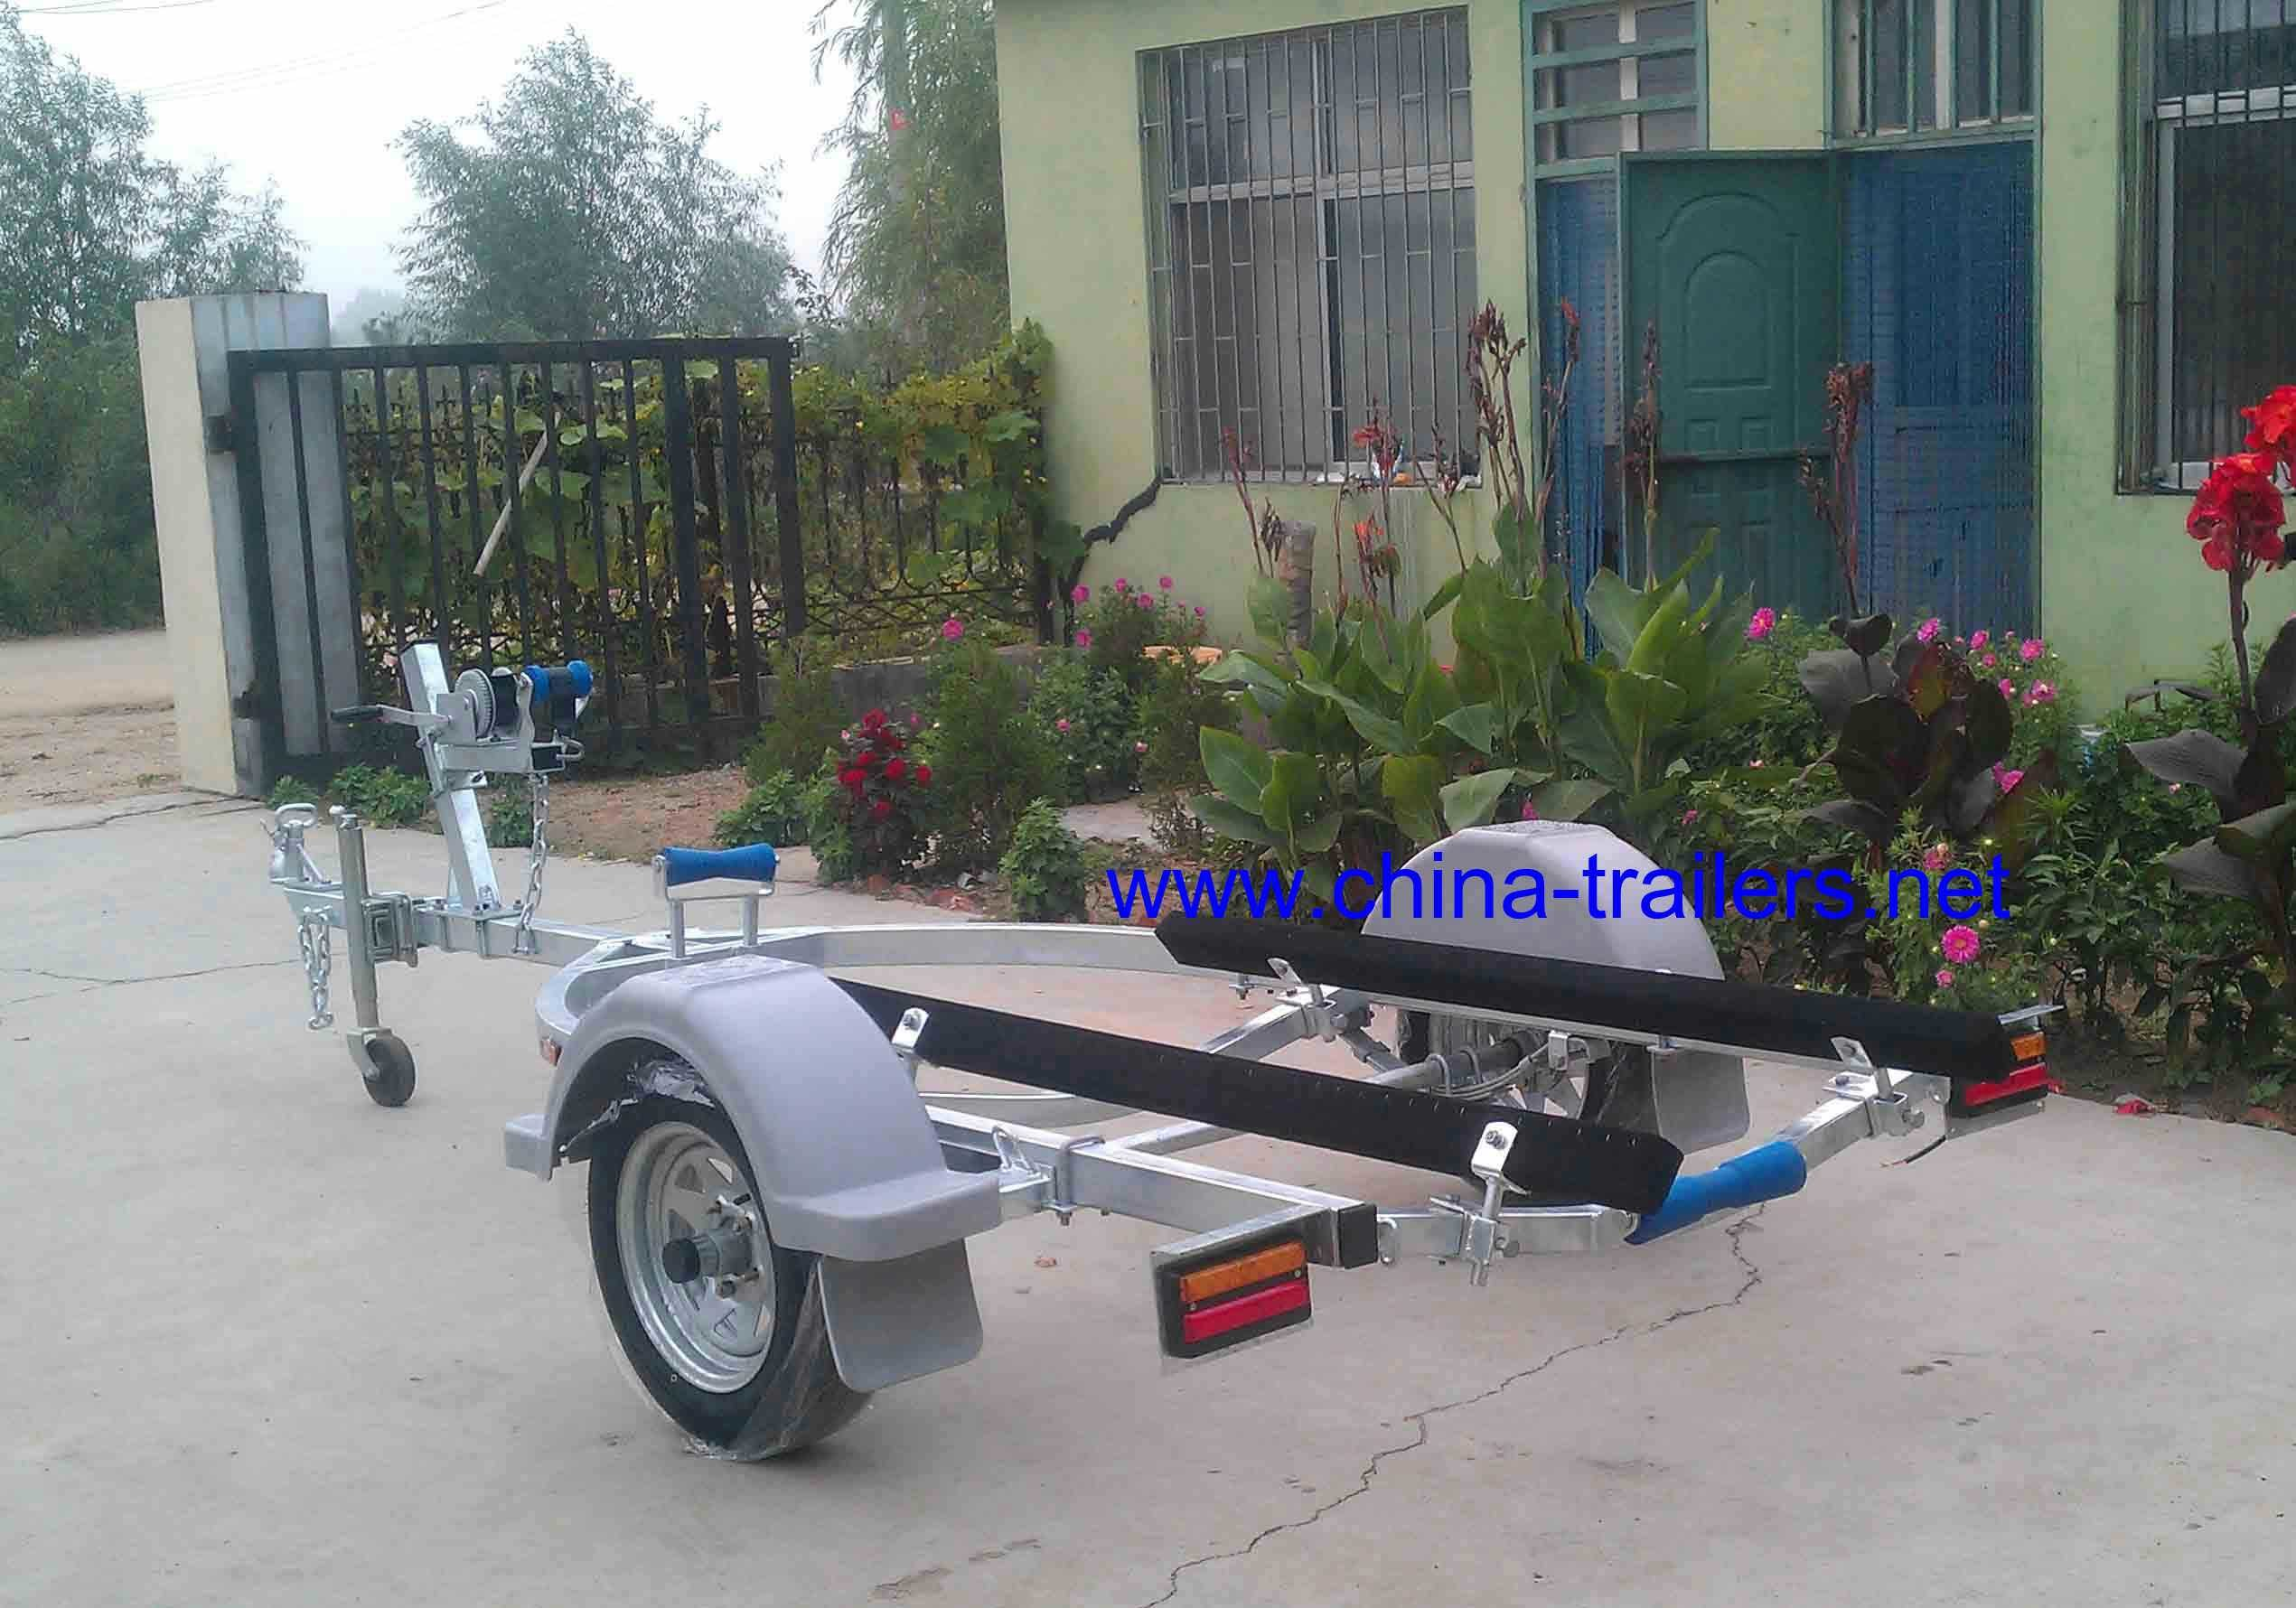 Single Axle Jet Ski Trailer